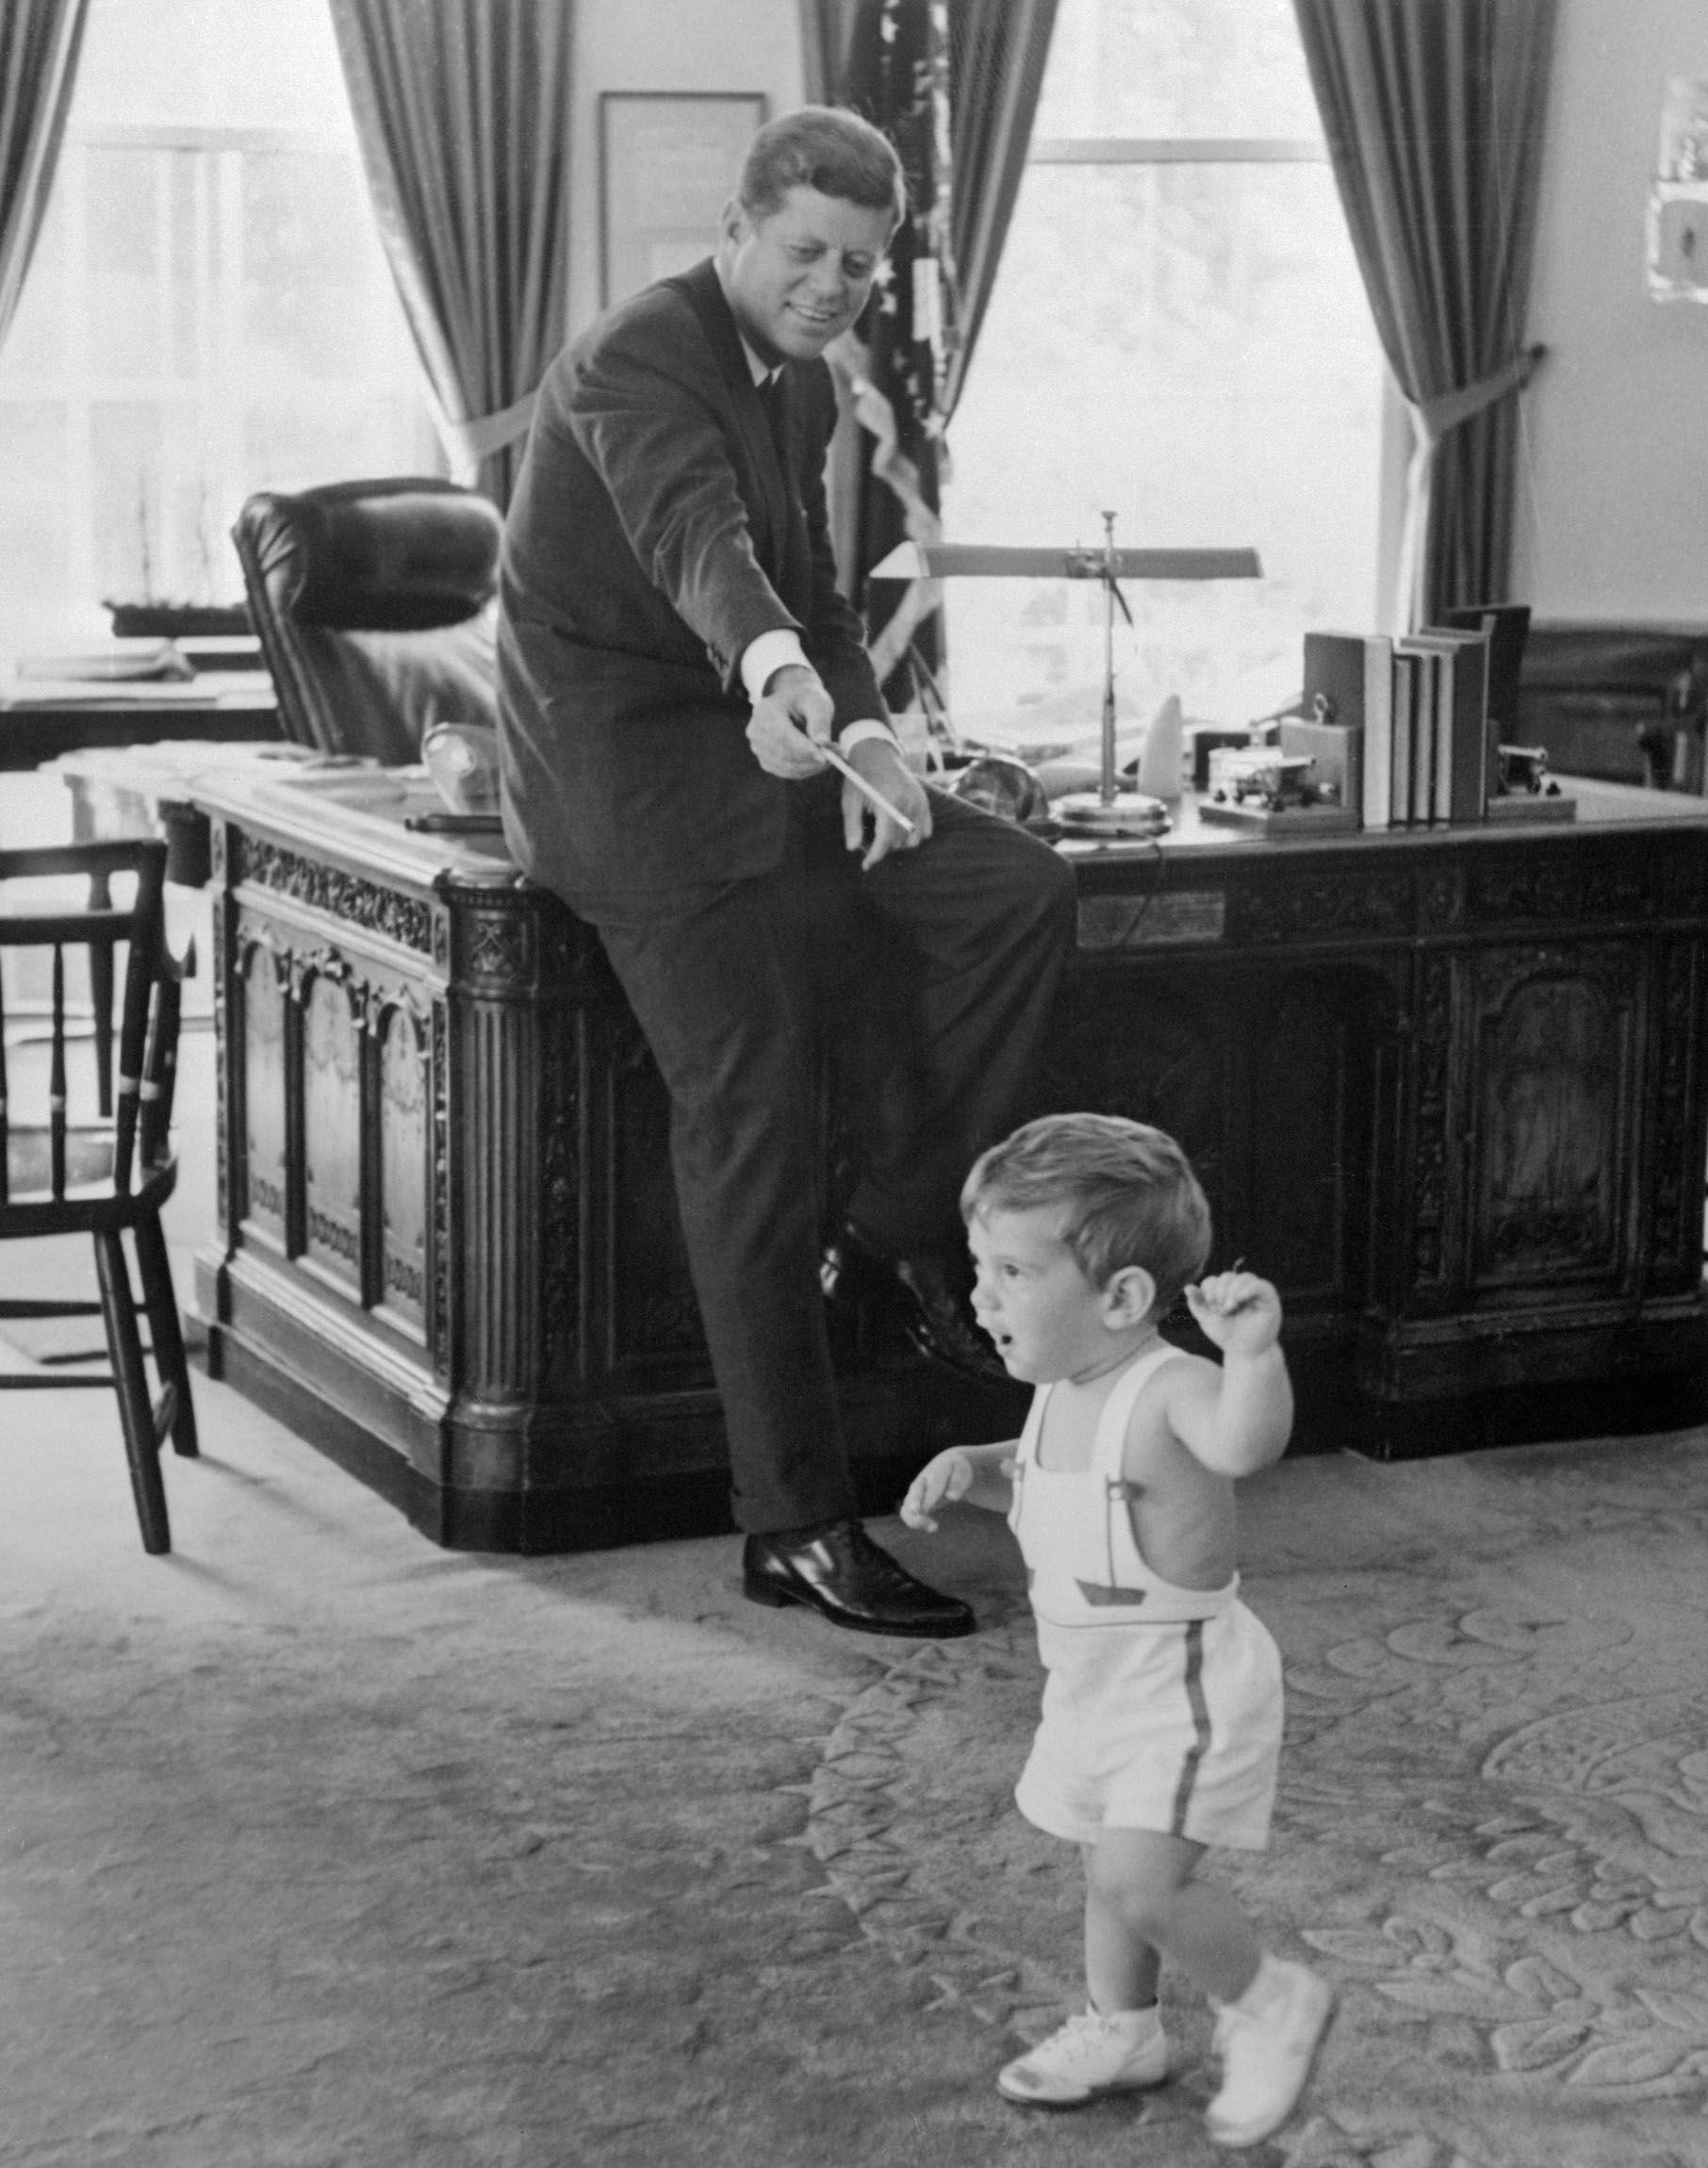 The White House released this picture showing President Kennedy watching his 18-month-old son, John Jr., playing in the Chief Executive's office in 1962.